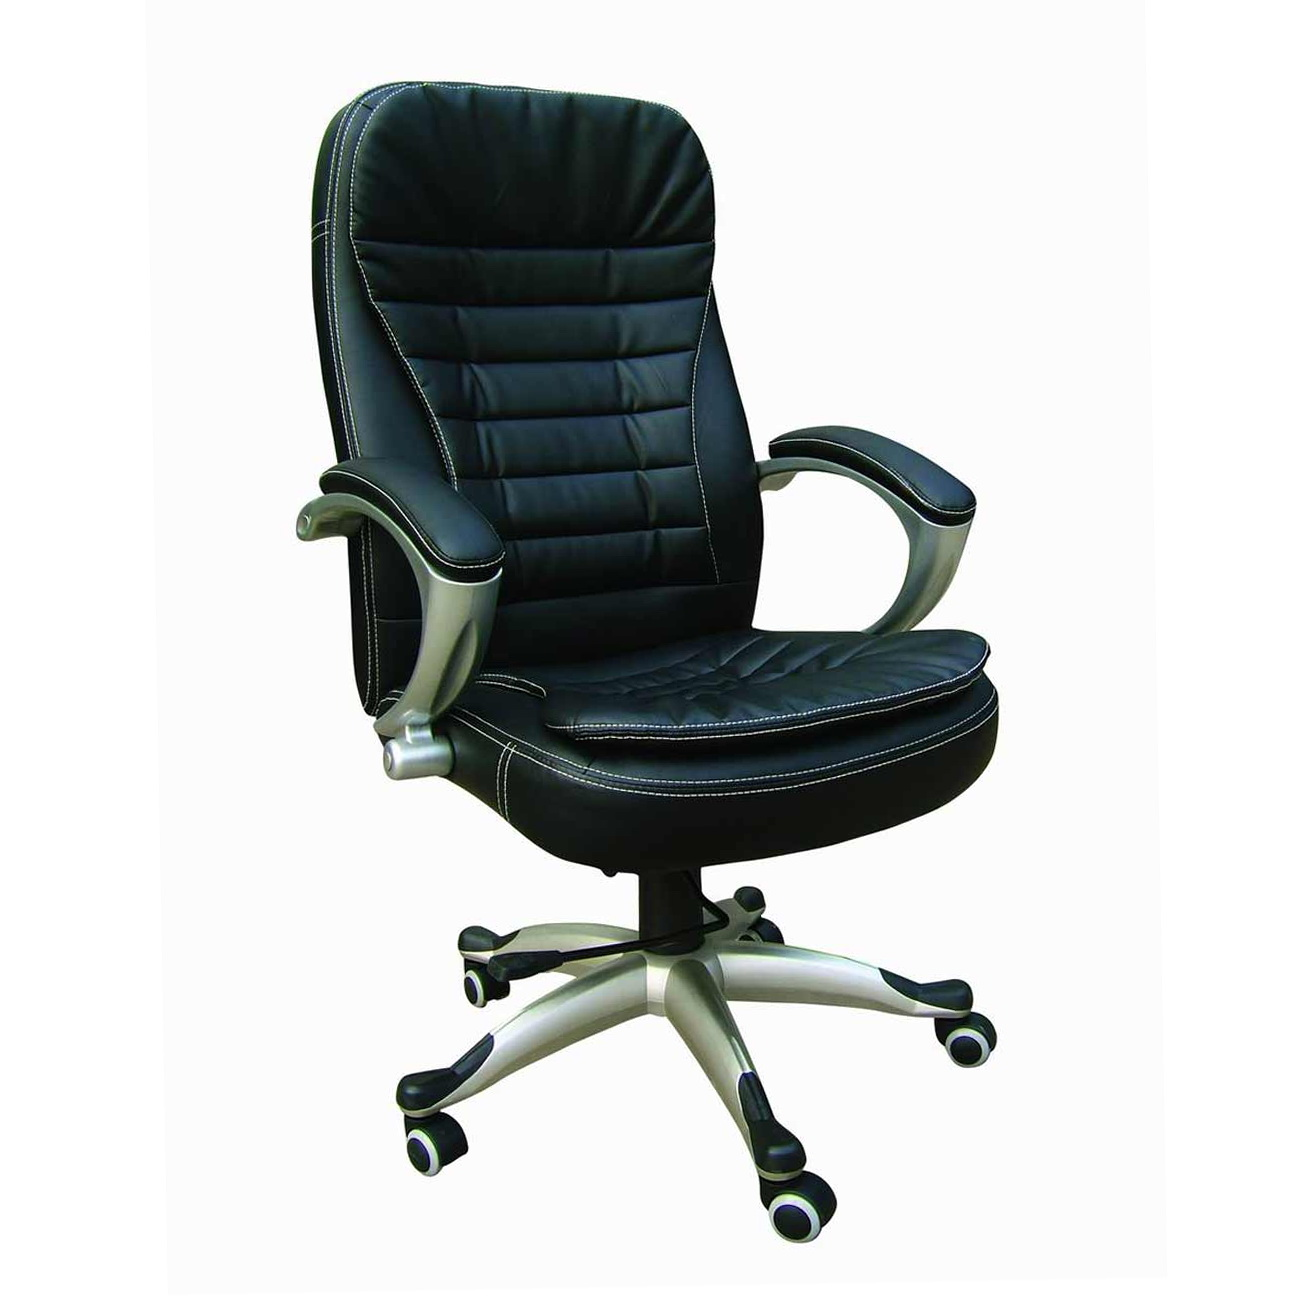 Ergonomic Seat Cushion For Office Chair  Home Design Ideas